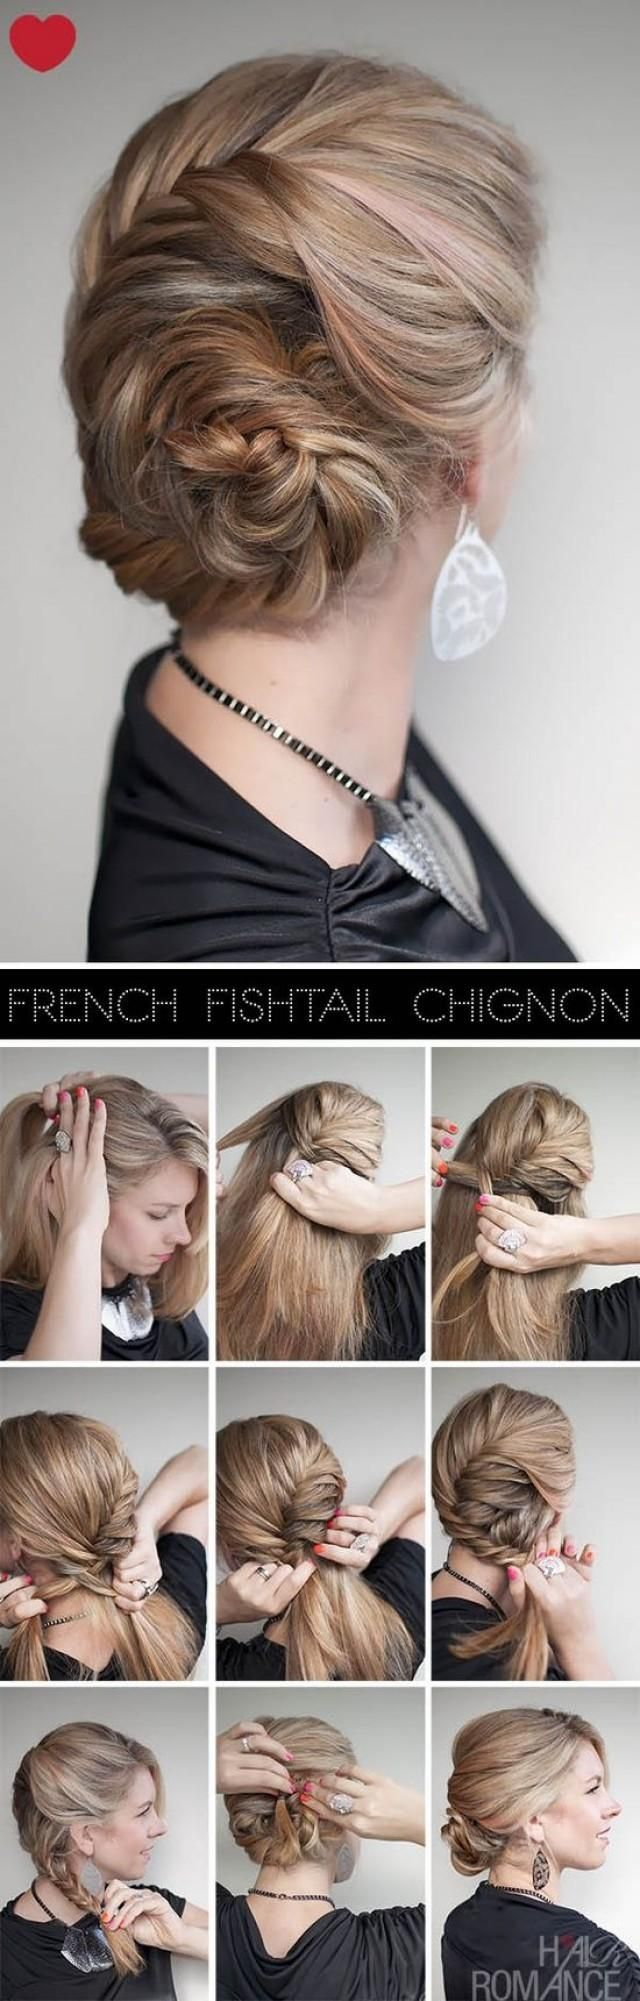 Weddbook is a content discovery engine mostly specialized on wedding concept. You can collect images, videos or articles you discovered organize them, add your own ideas to your collections and share with other people   French Fishtail Chignon: a classy up-do I wish I was coordinated enough to try this. Anybody want to volunteer?